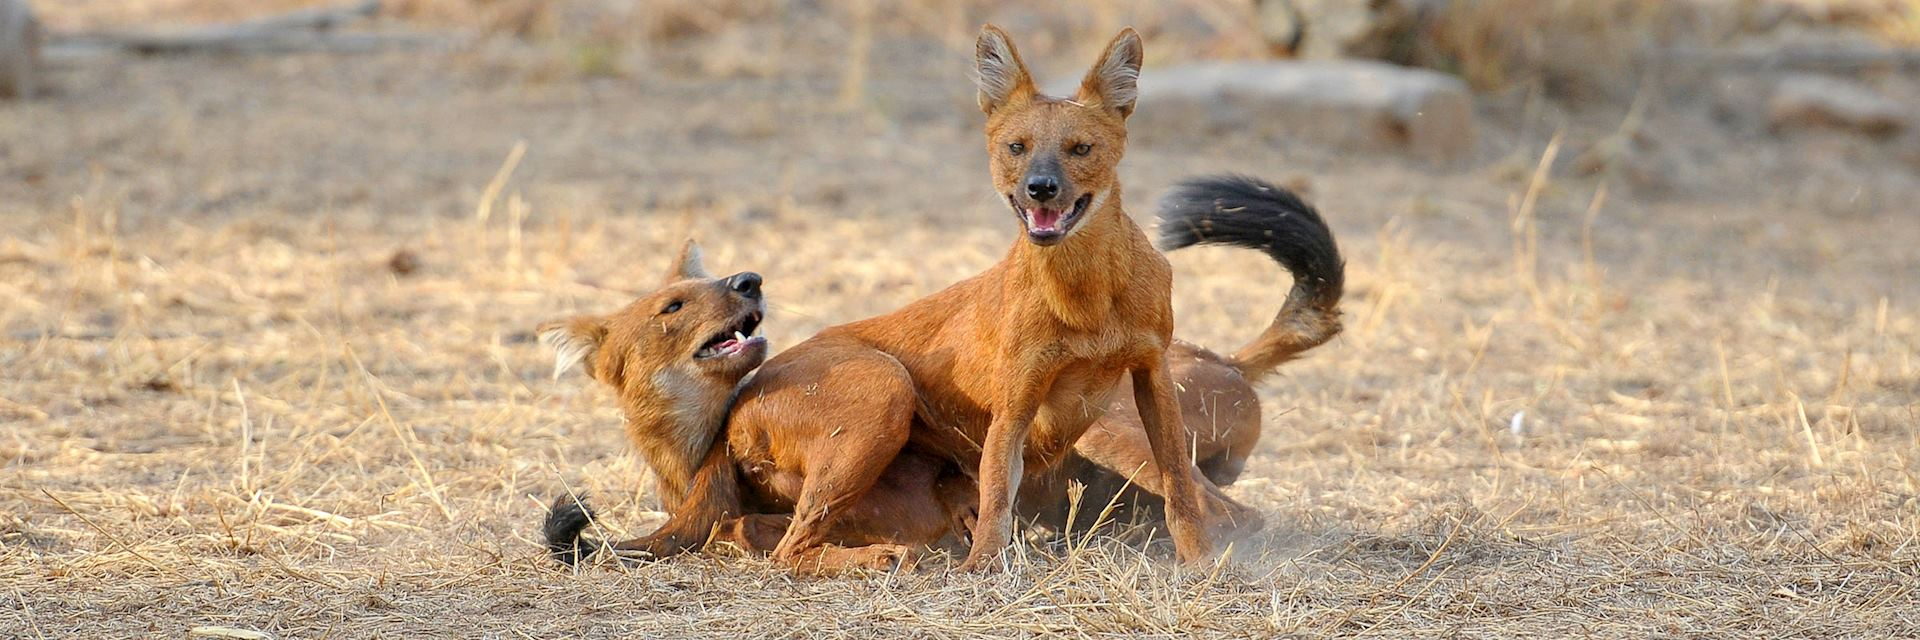 Wild dogs in Tadoba National Park